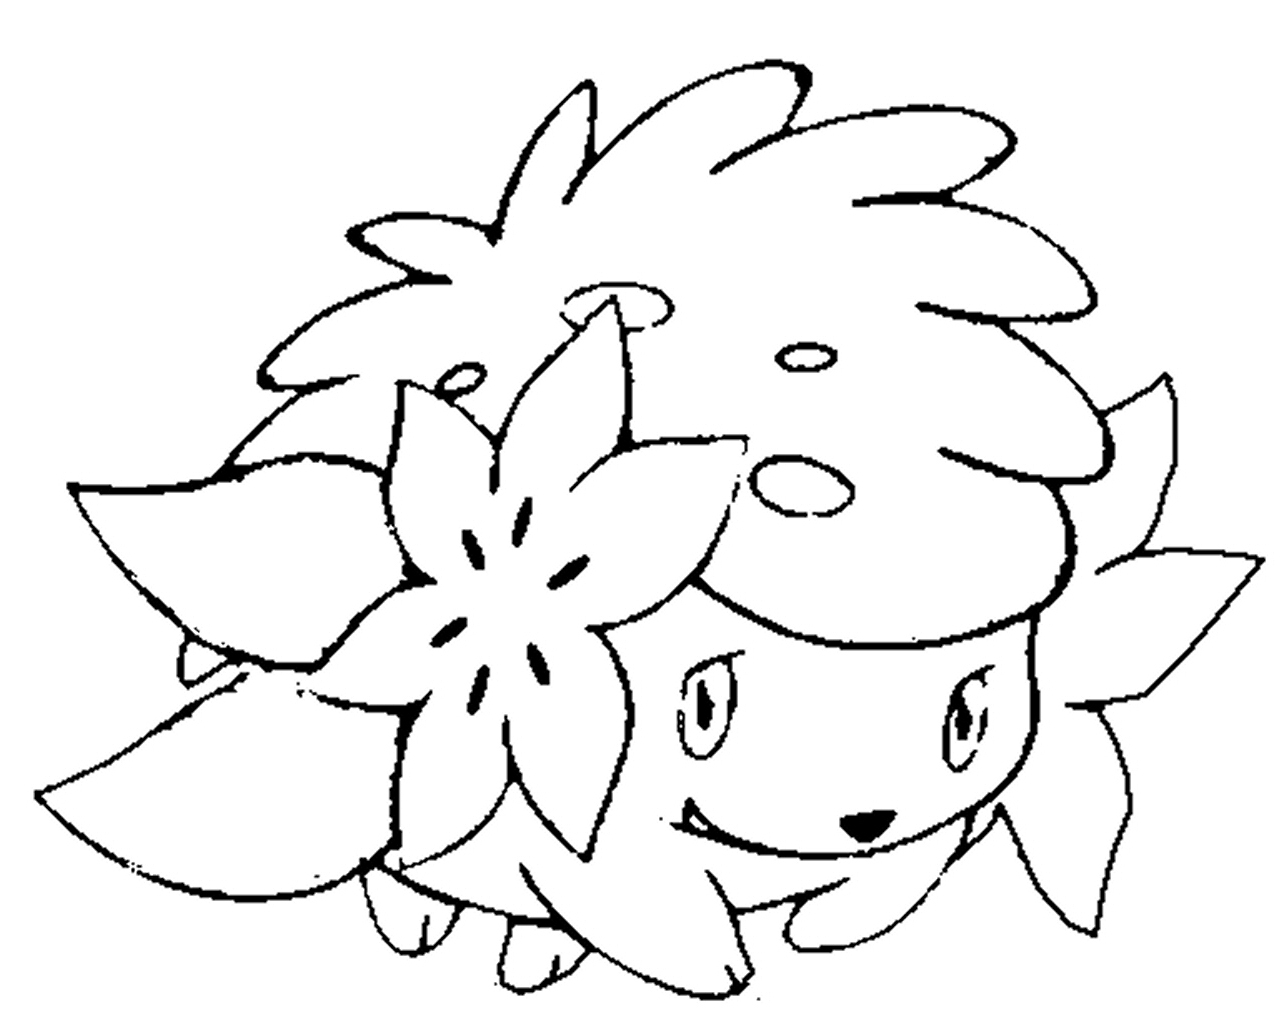 1282x1012 Pokemon Shaymin Coloring Page Embroidery